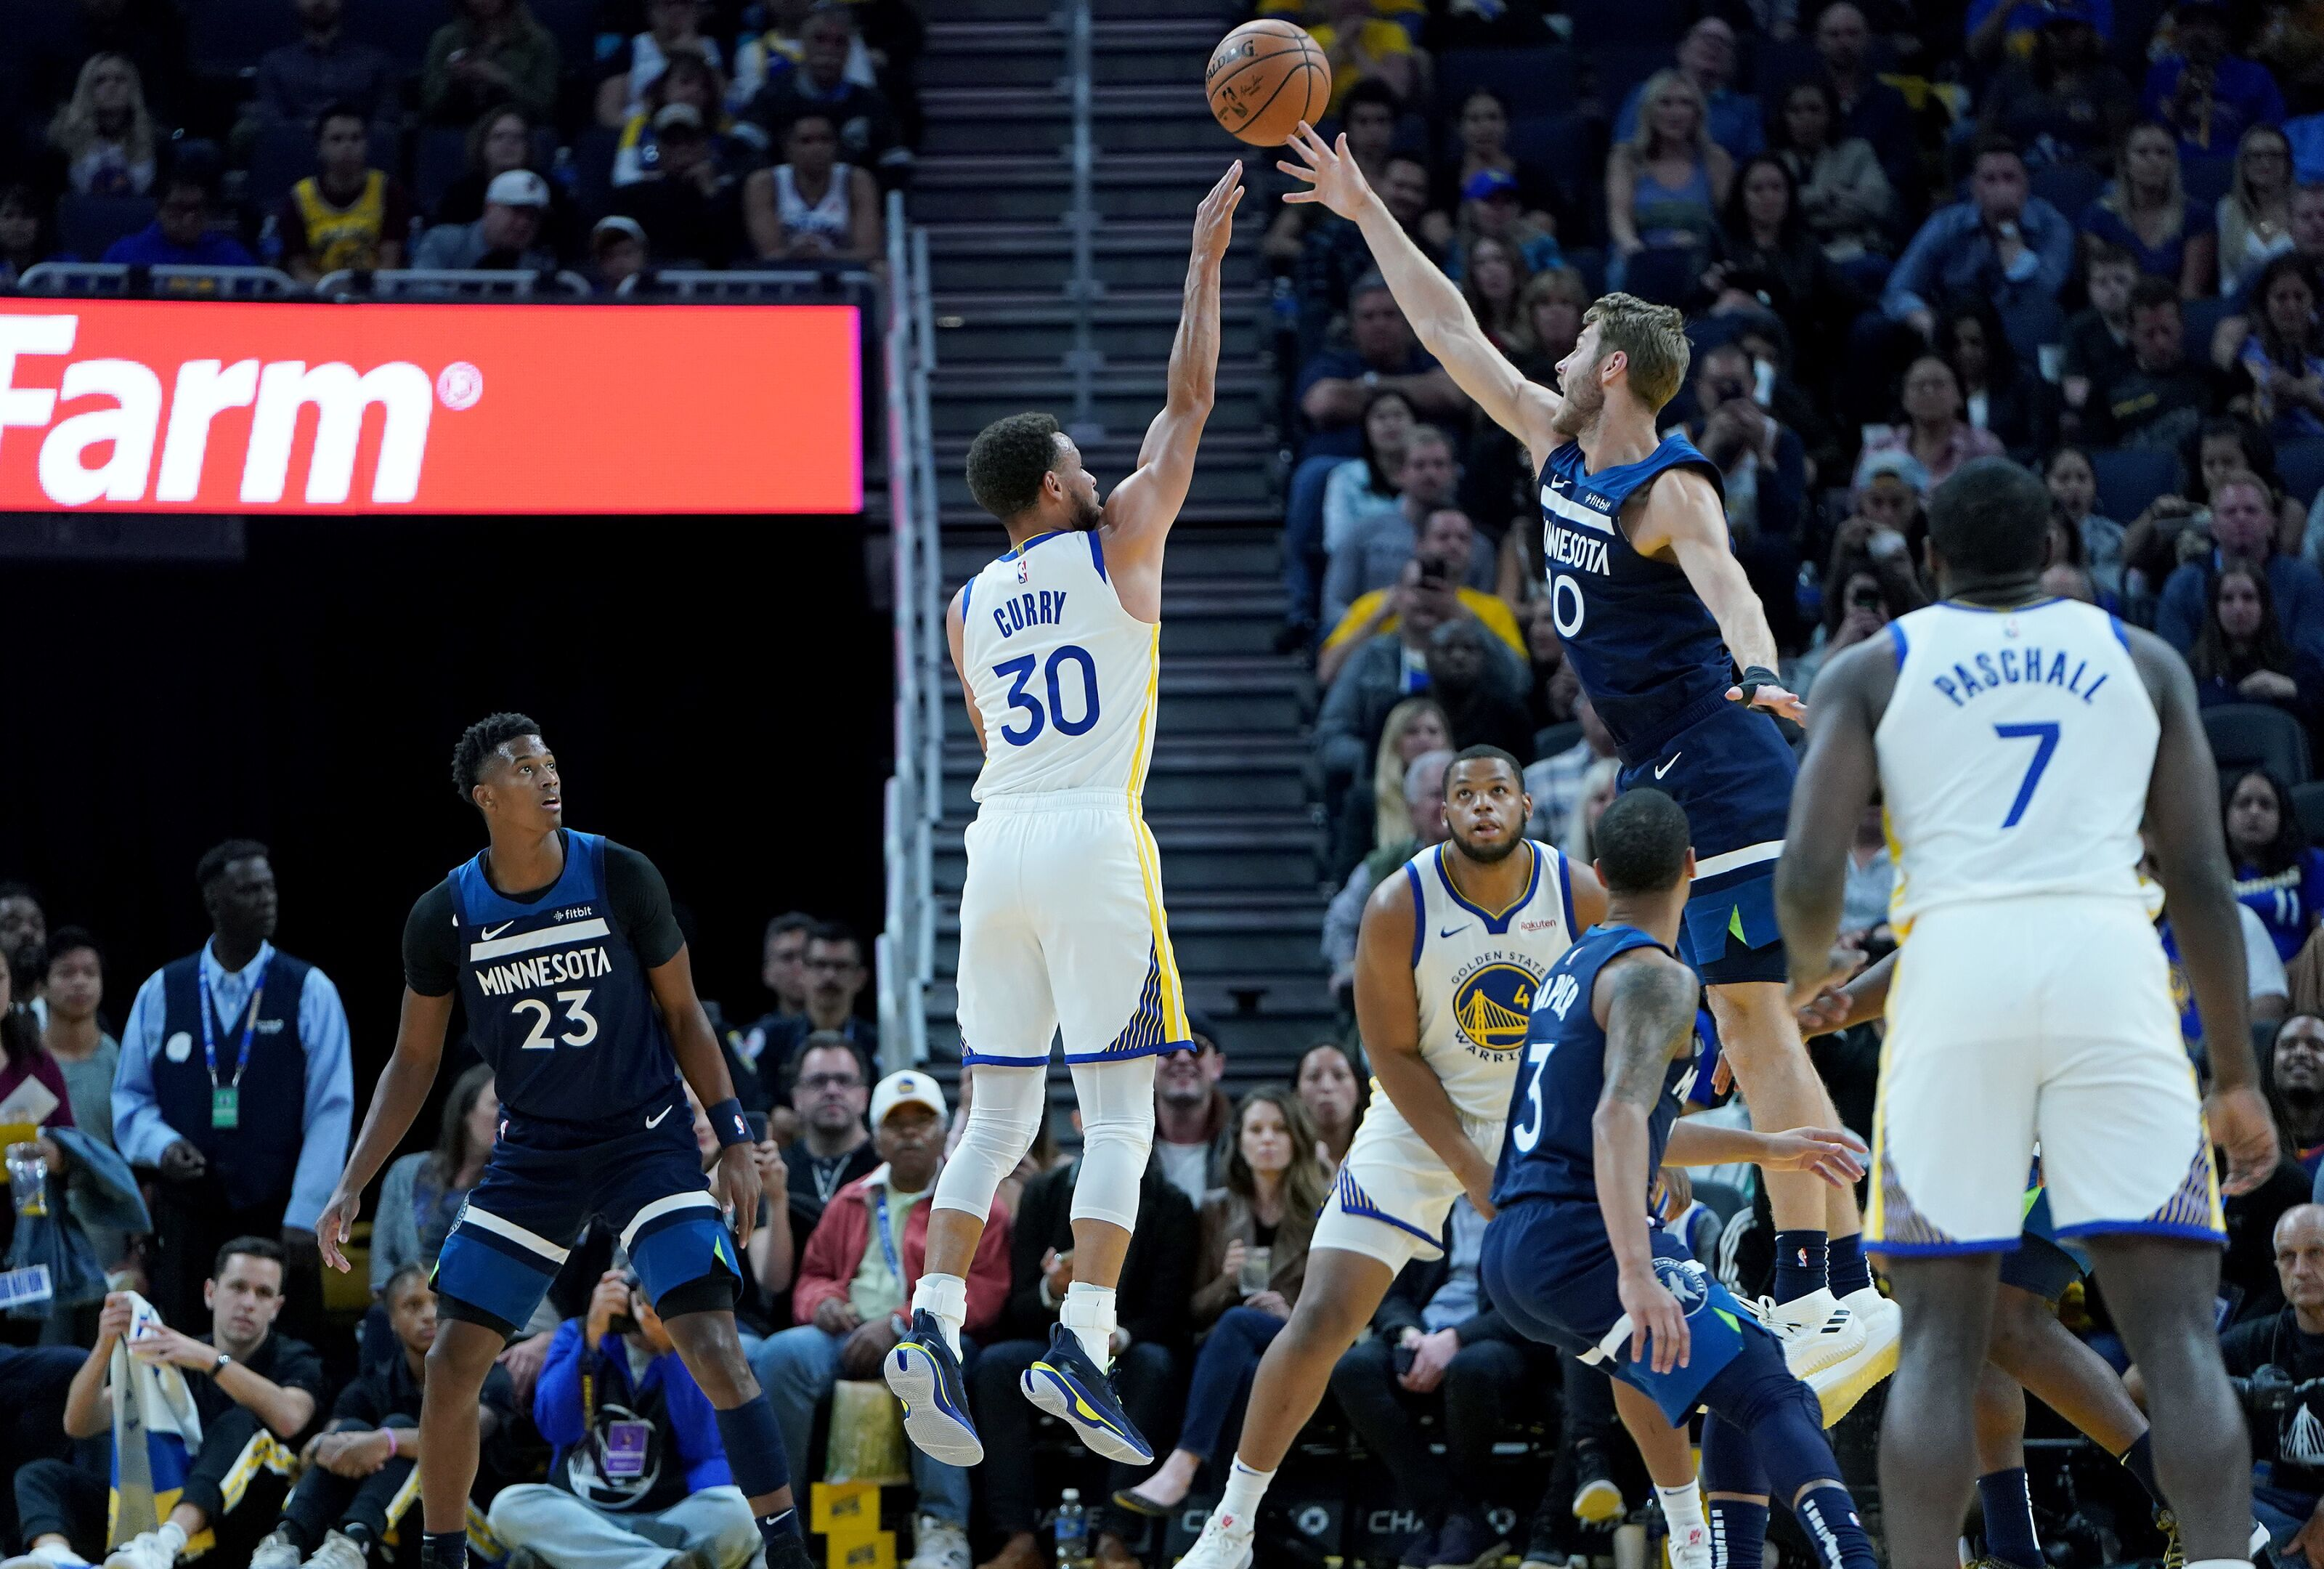 The Warriors showed how far the Minnesota Timberwolves' offense has to go